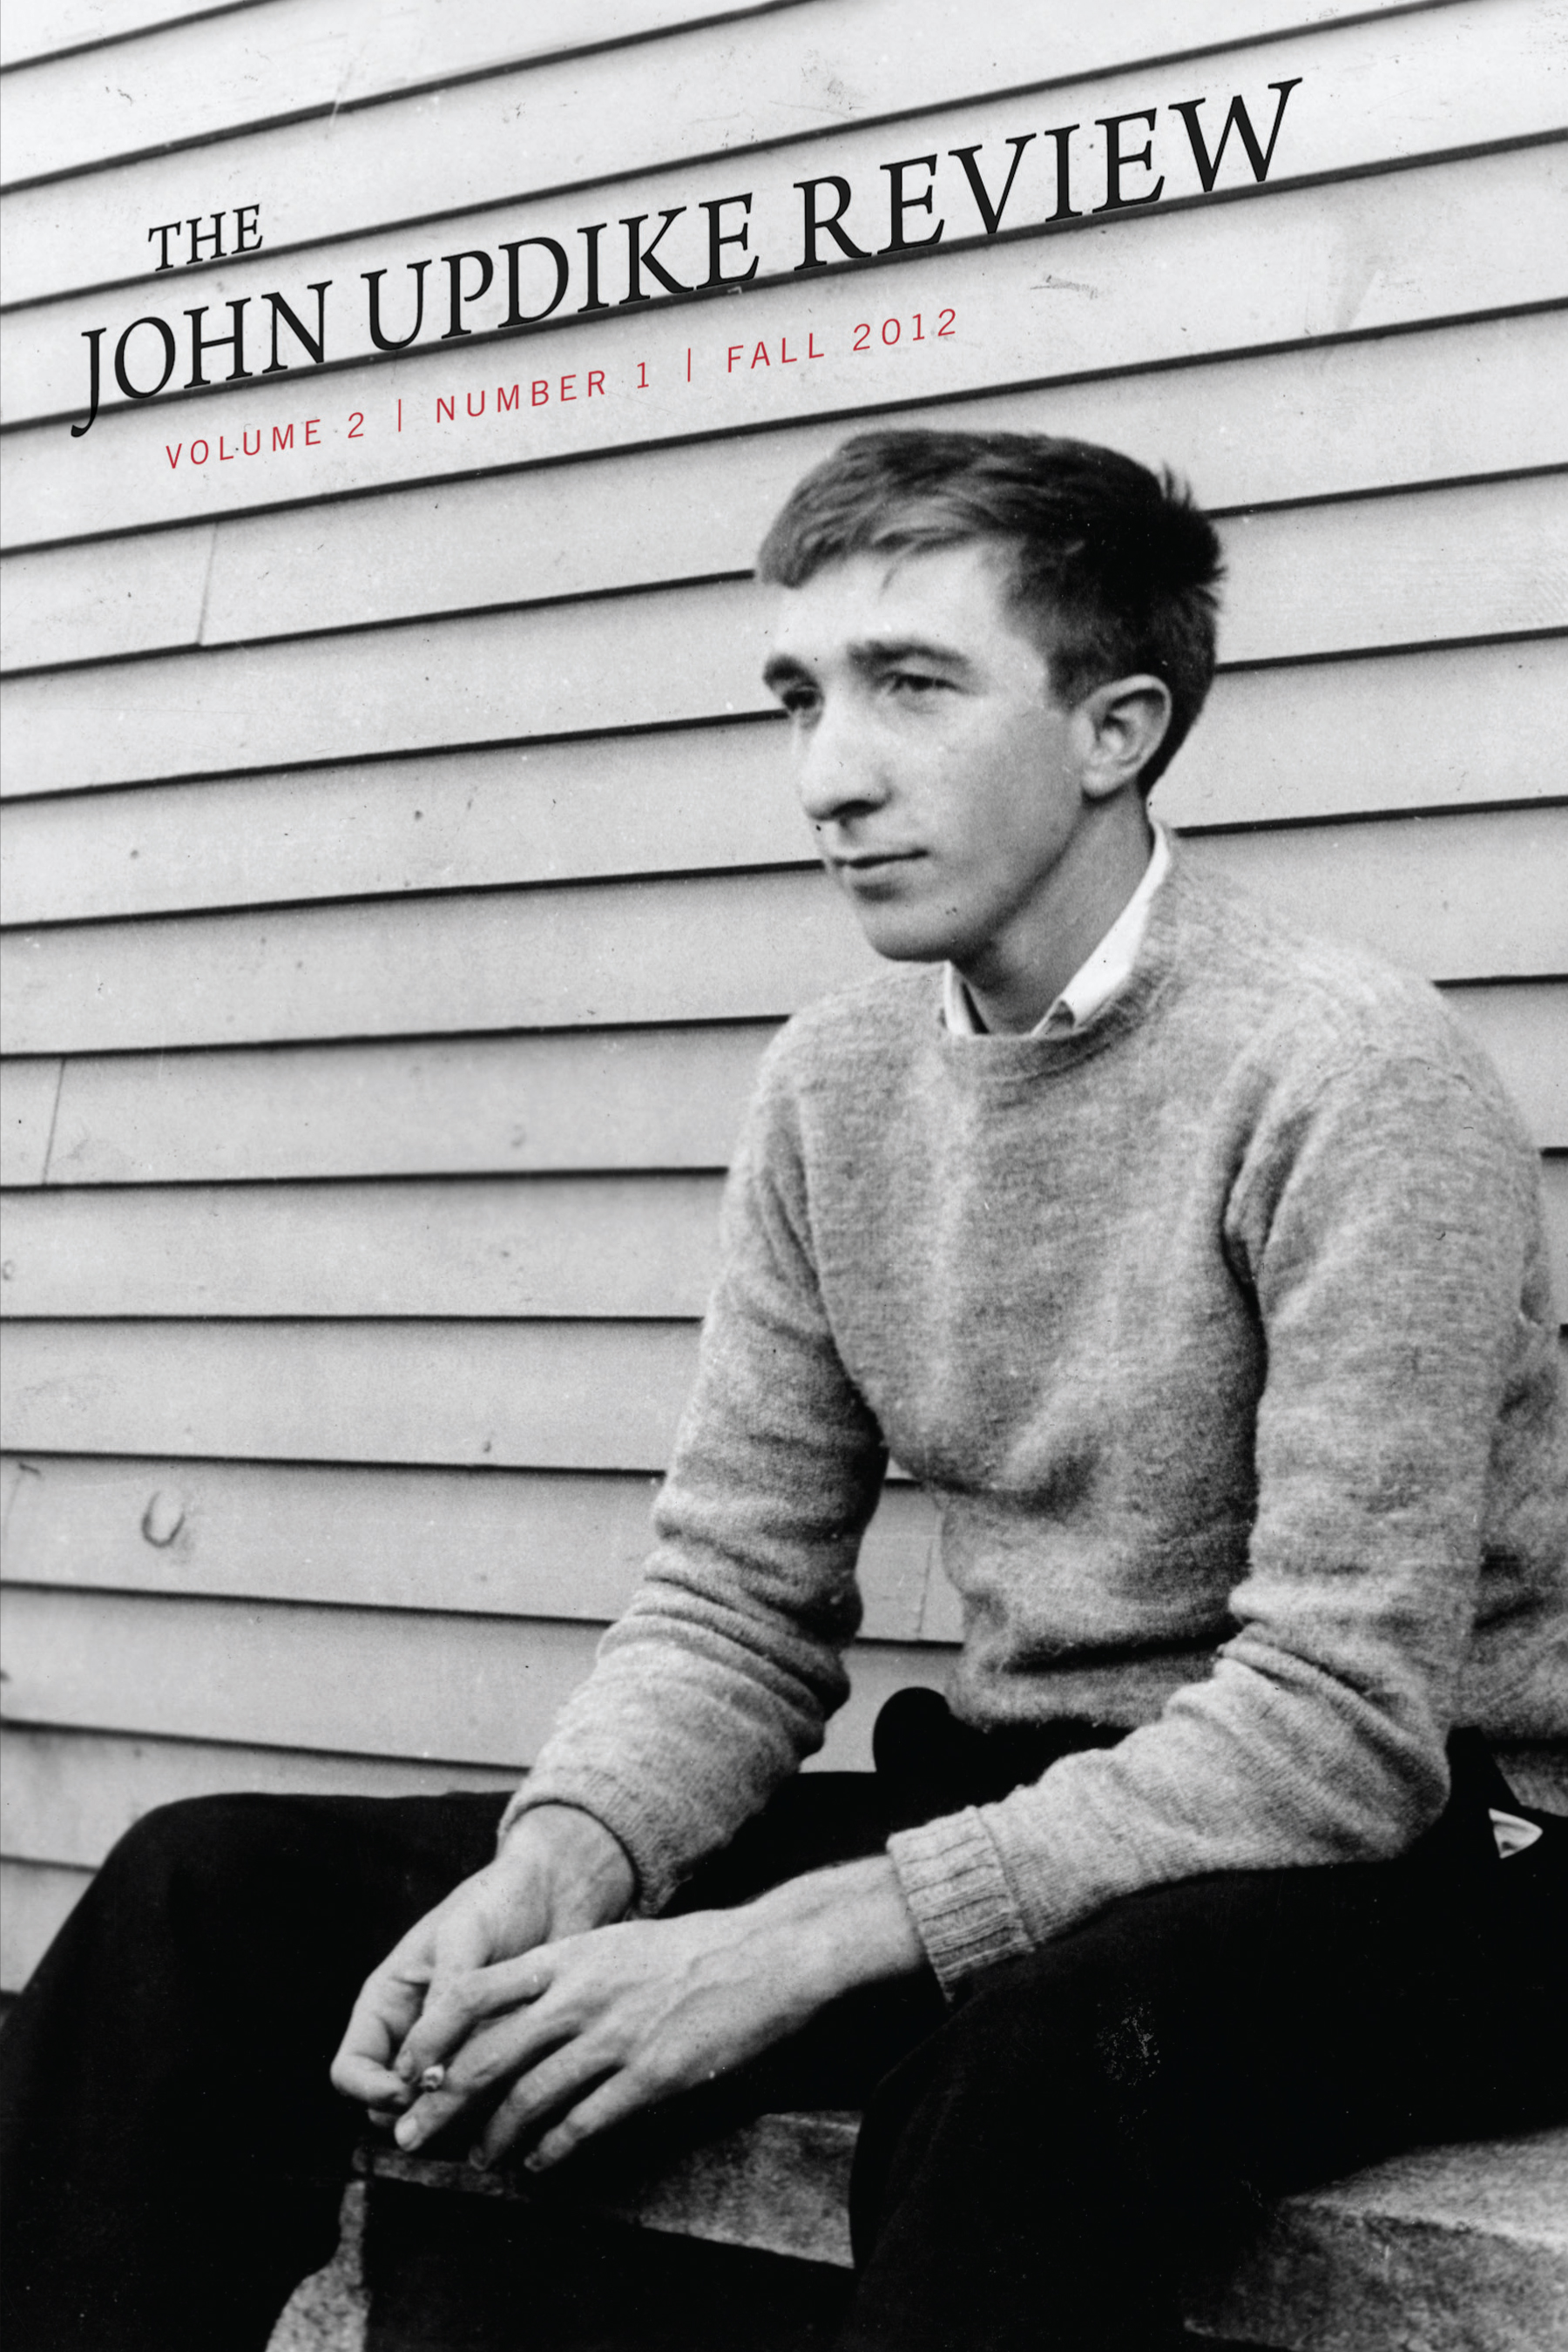 a p by john updike essay A&p is one of john updike's short stories it was written way back in 1961 it is a short story of a teenage boy who took a stand for what he thinks is.